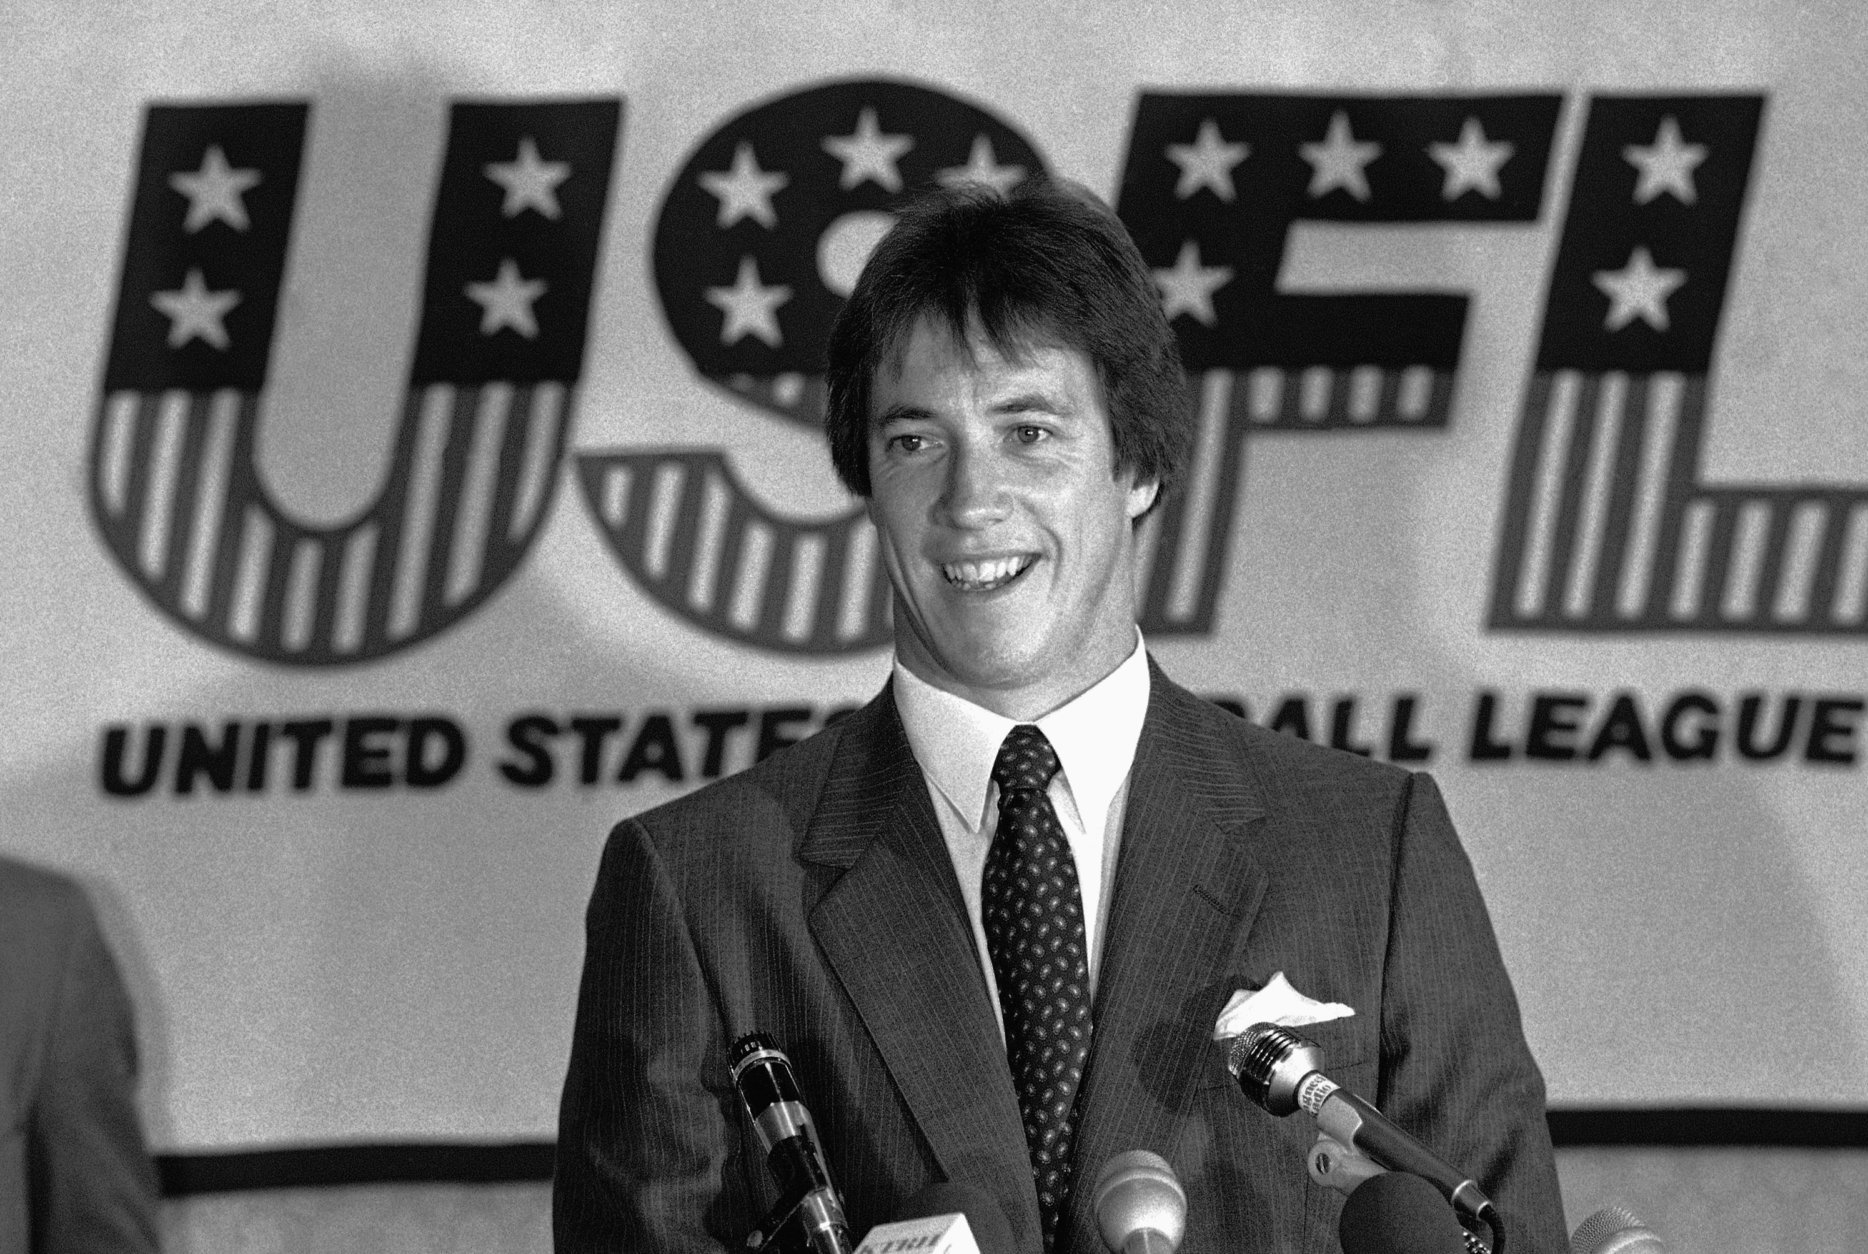 University of Miami quarterback Jim Kelly is all smiles at his press conference, Thursday, June 10, 1983 after signing a multi-year contract with the new USFL franchise, the Houston Gamblers. His college teammate running back Mark Rush also signed with the Gamblers. Both were drafted by NFL clubs. (AP Photo/F. Carter Smith)